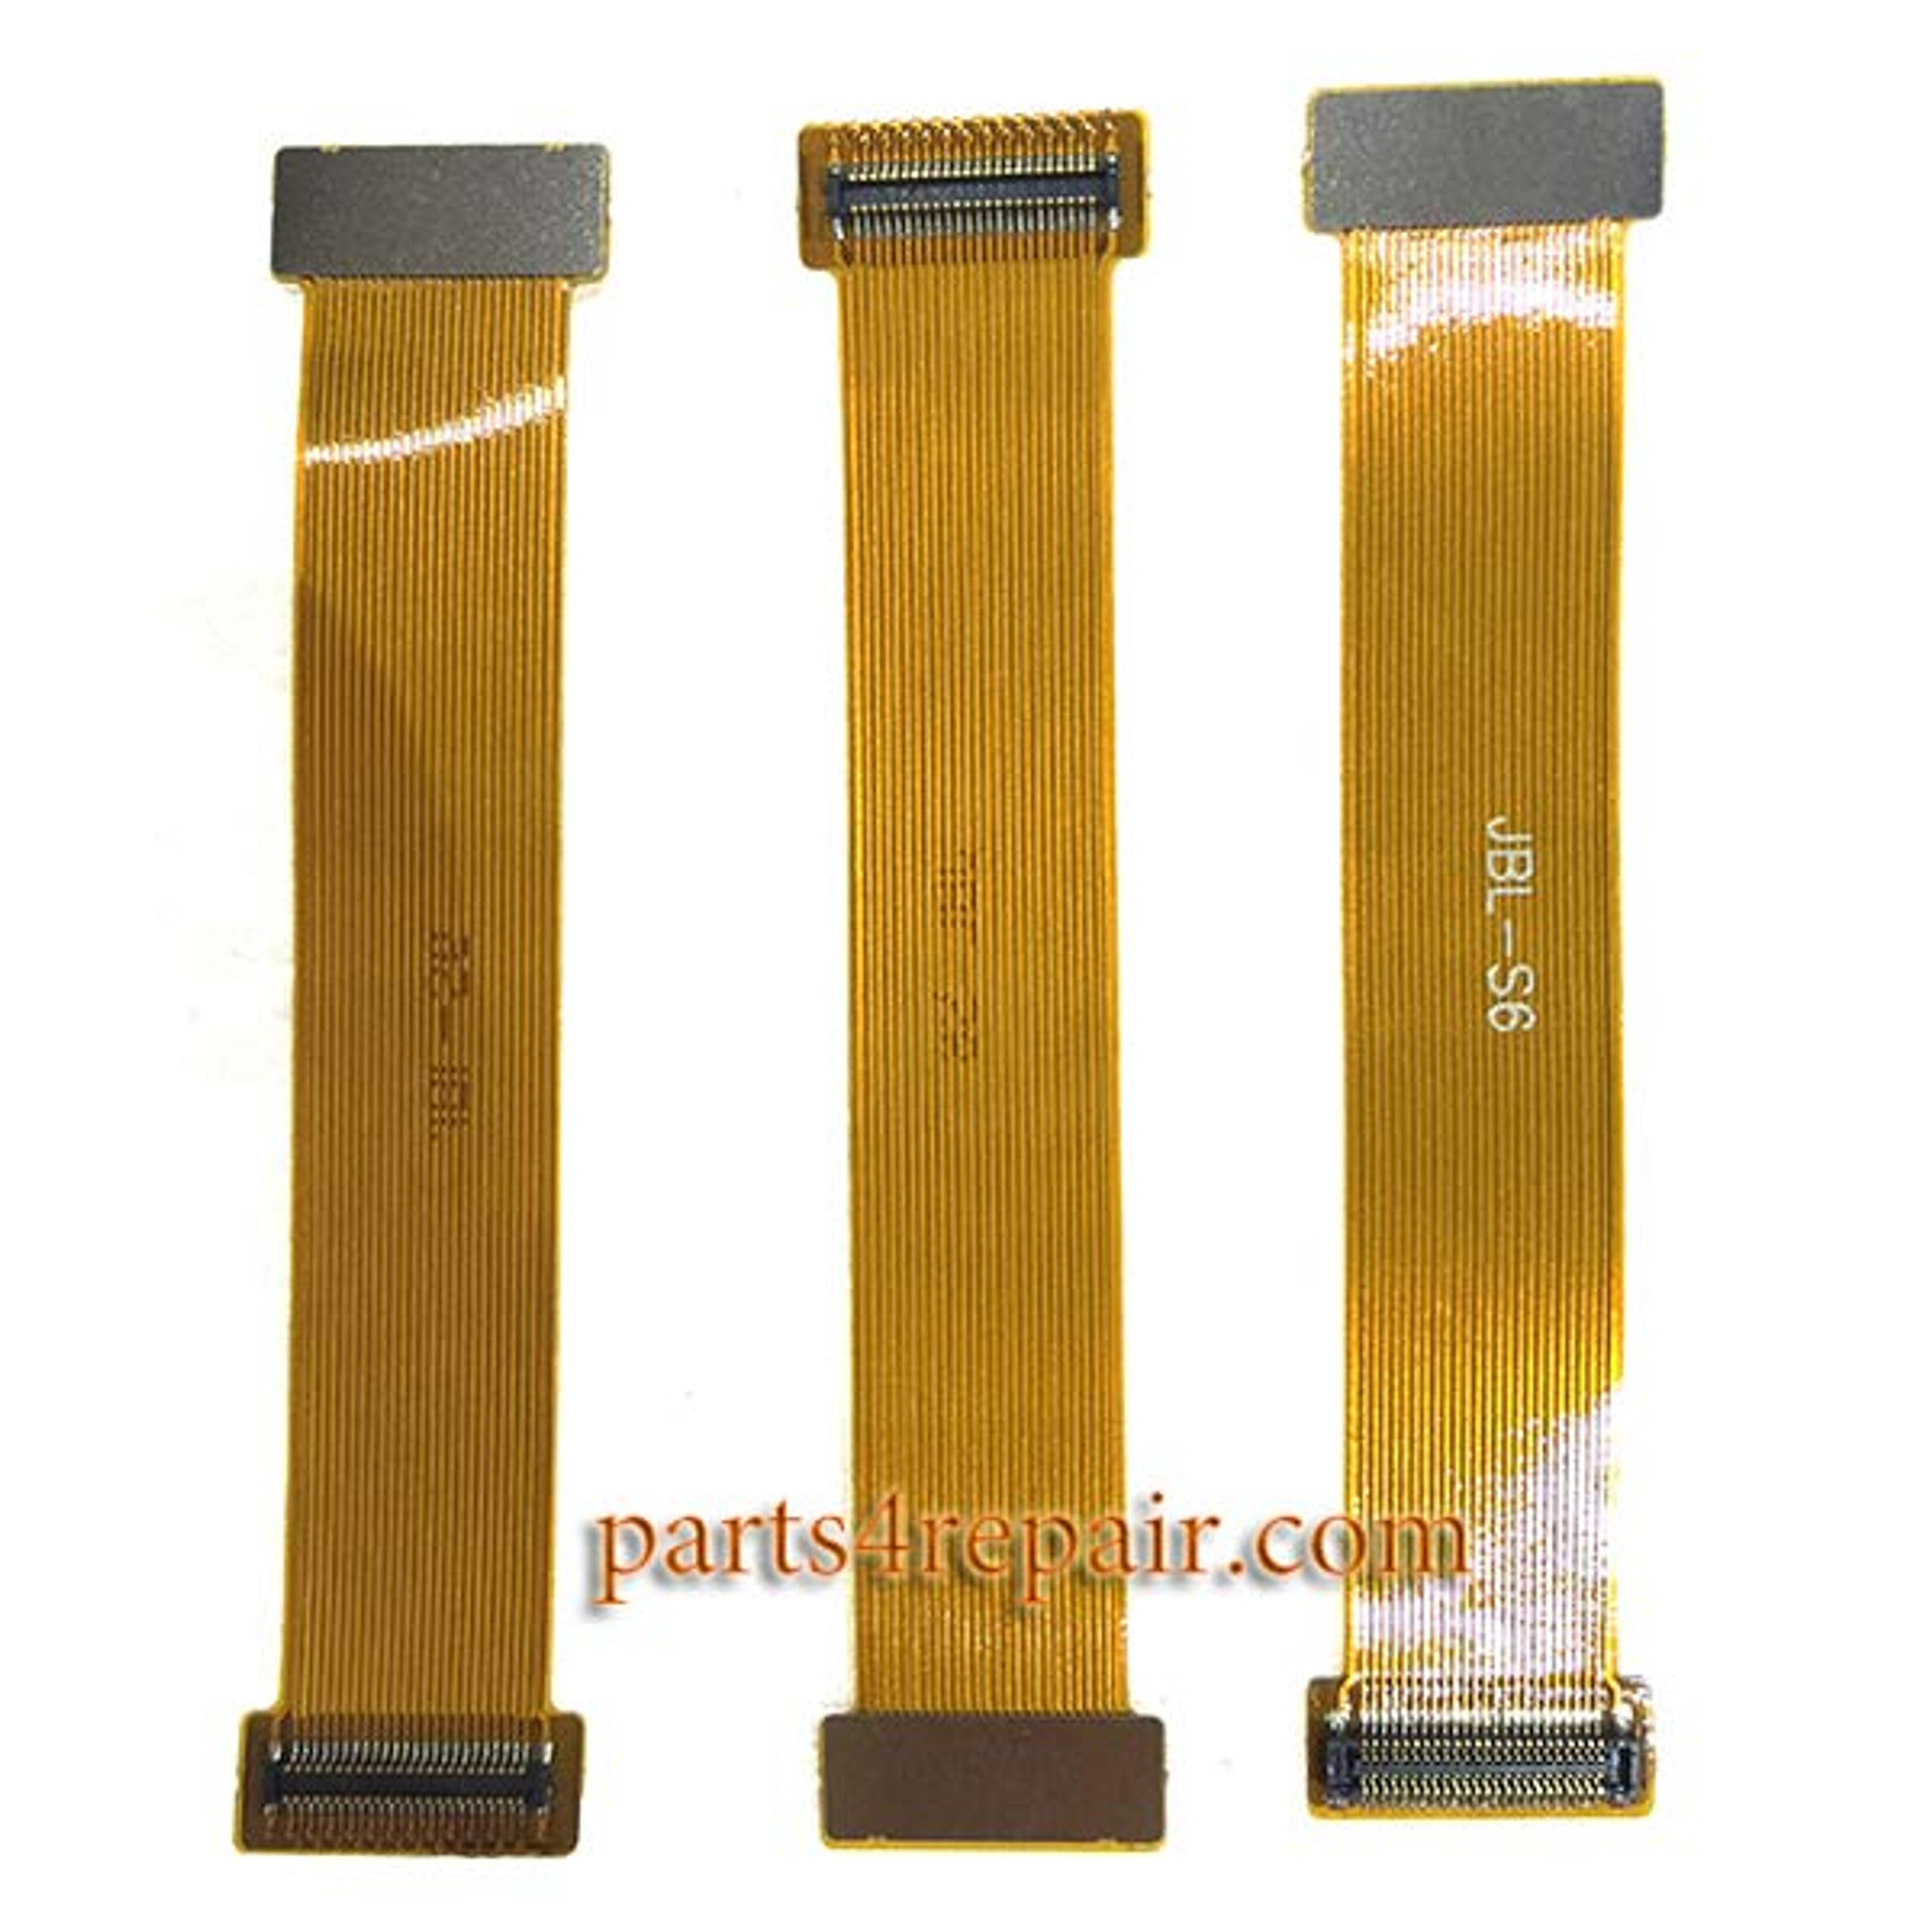 LCD Screen Test Flex Cable for Samsung Galaxy S6 Edge All Versions